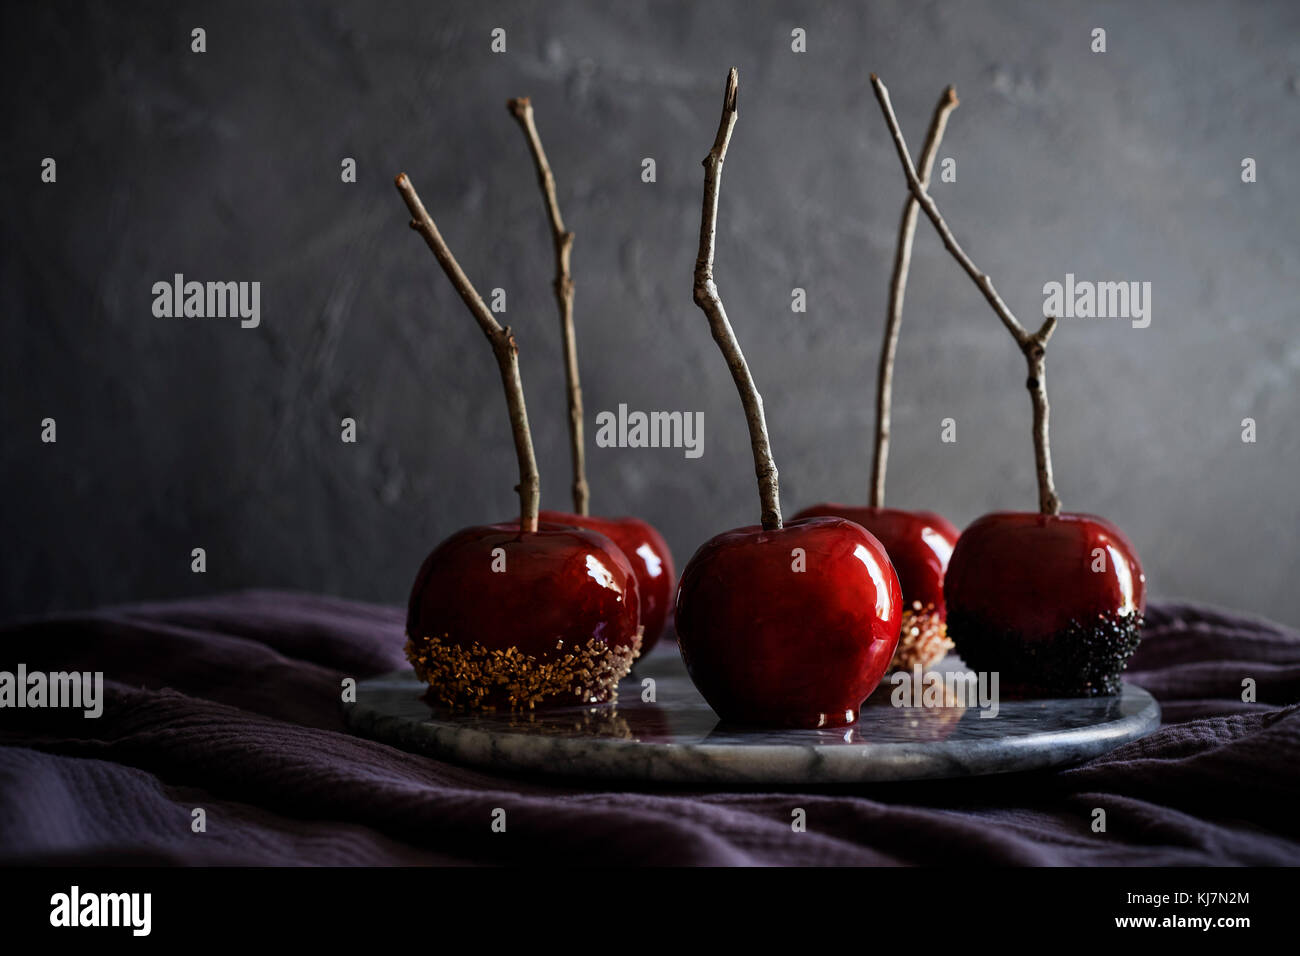 Marble tray of beautiful, red, candy apples on dark purple linen. Moody feel with dark textured background. - Stock Image